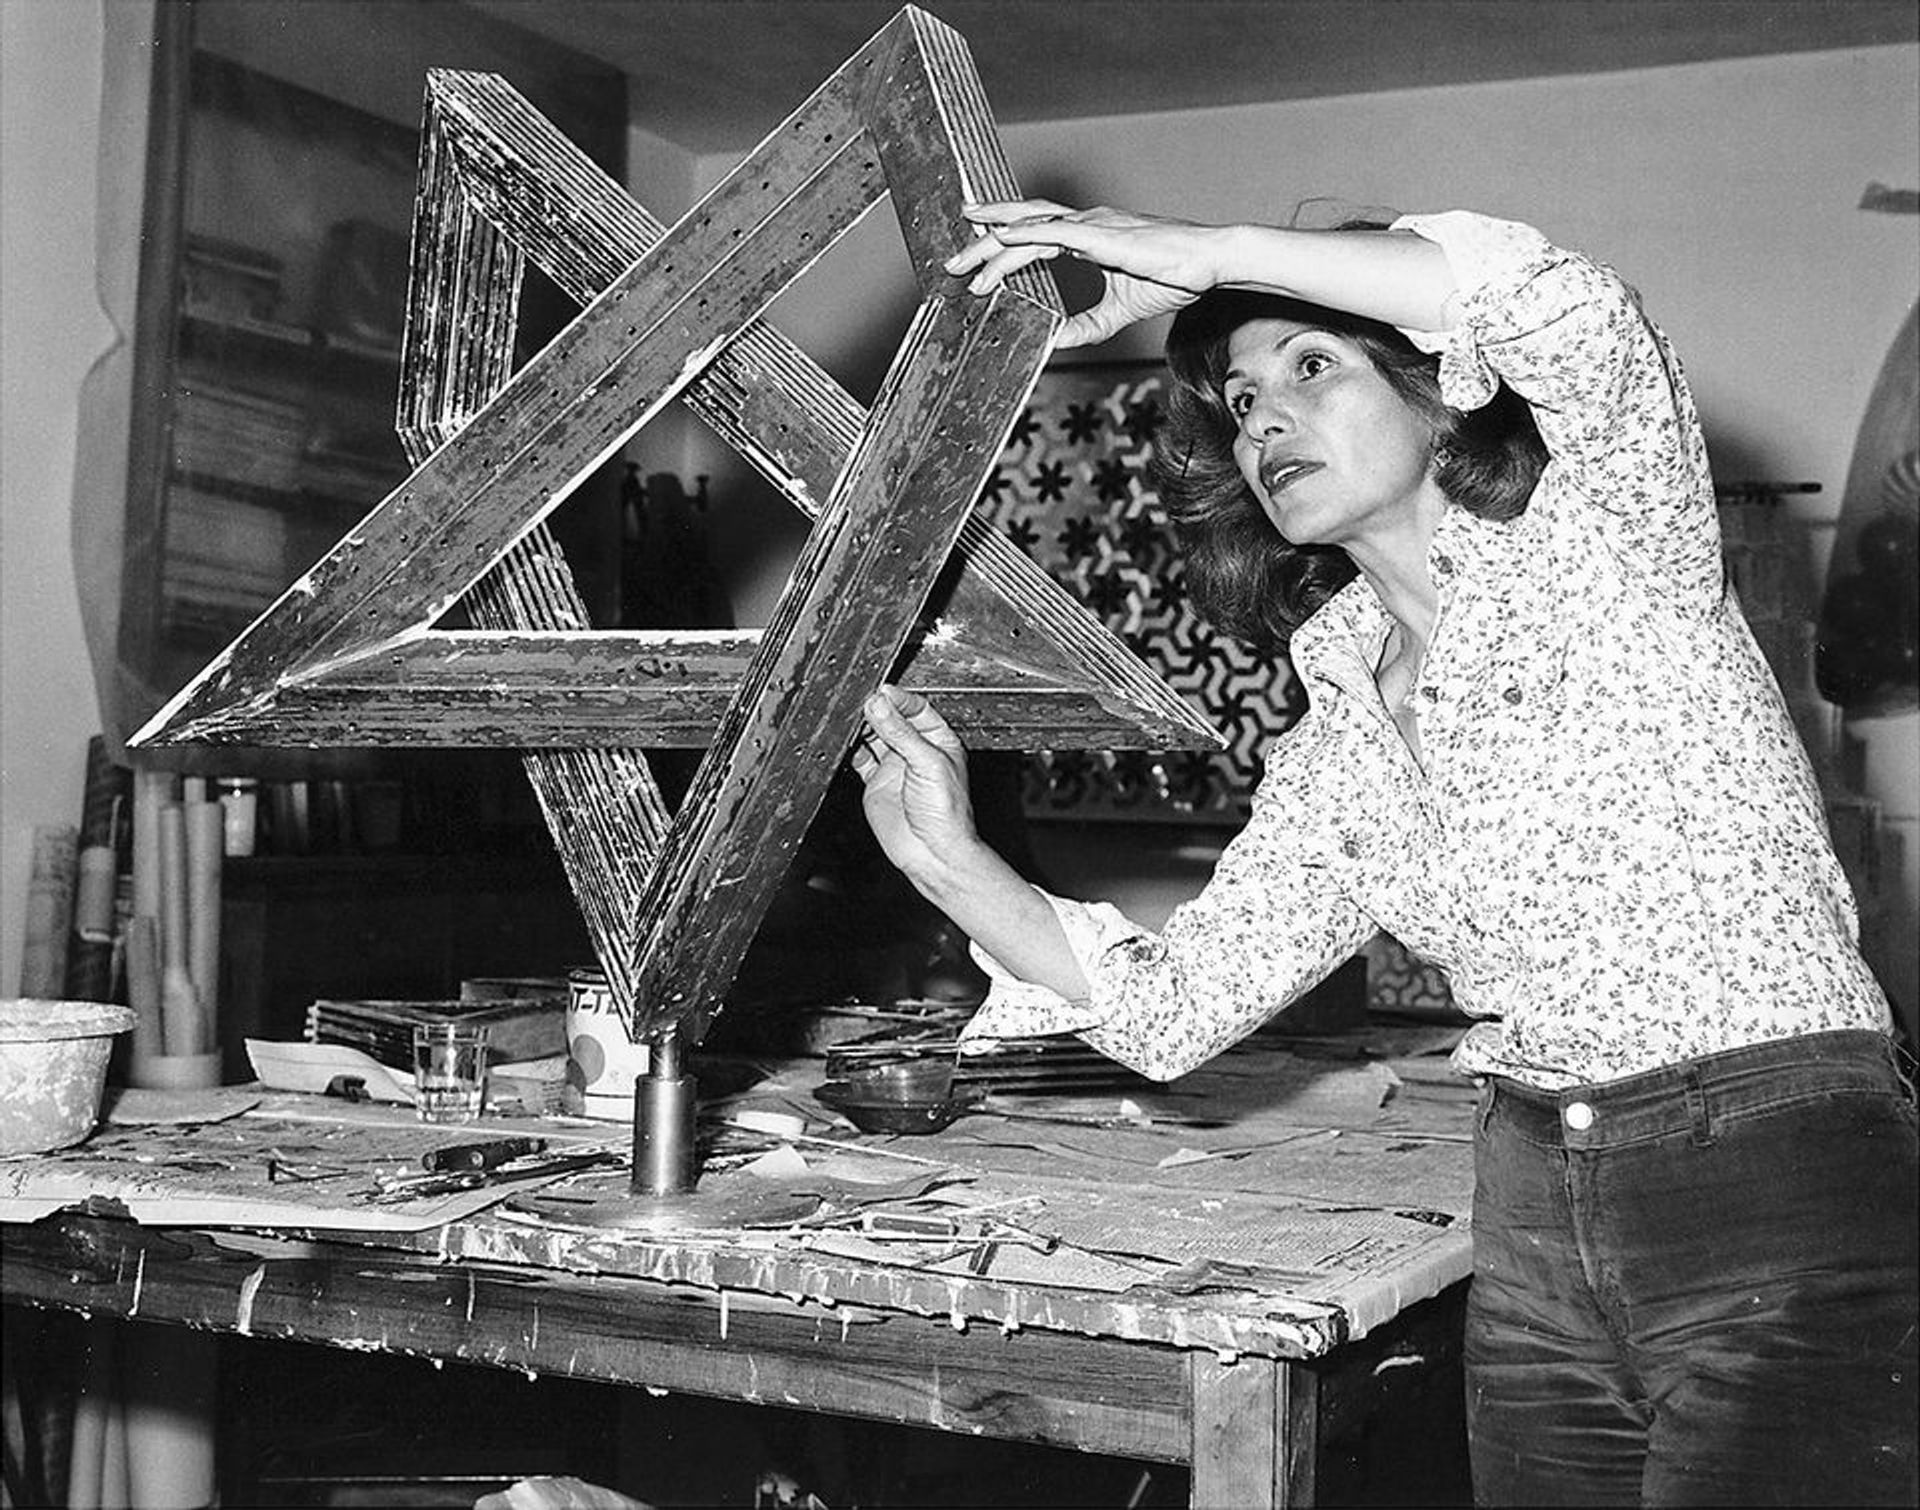 Farmanfarmaian working in her studio in Tehran in 1975 Courtesy of the artist's family and Haines Gallery